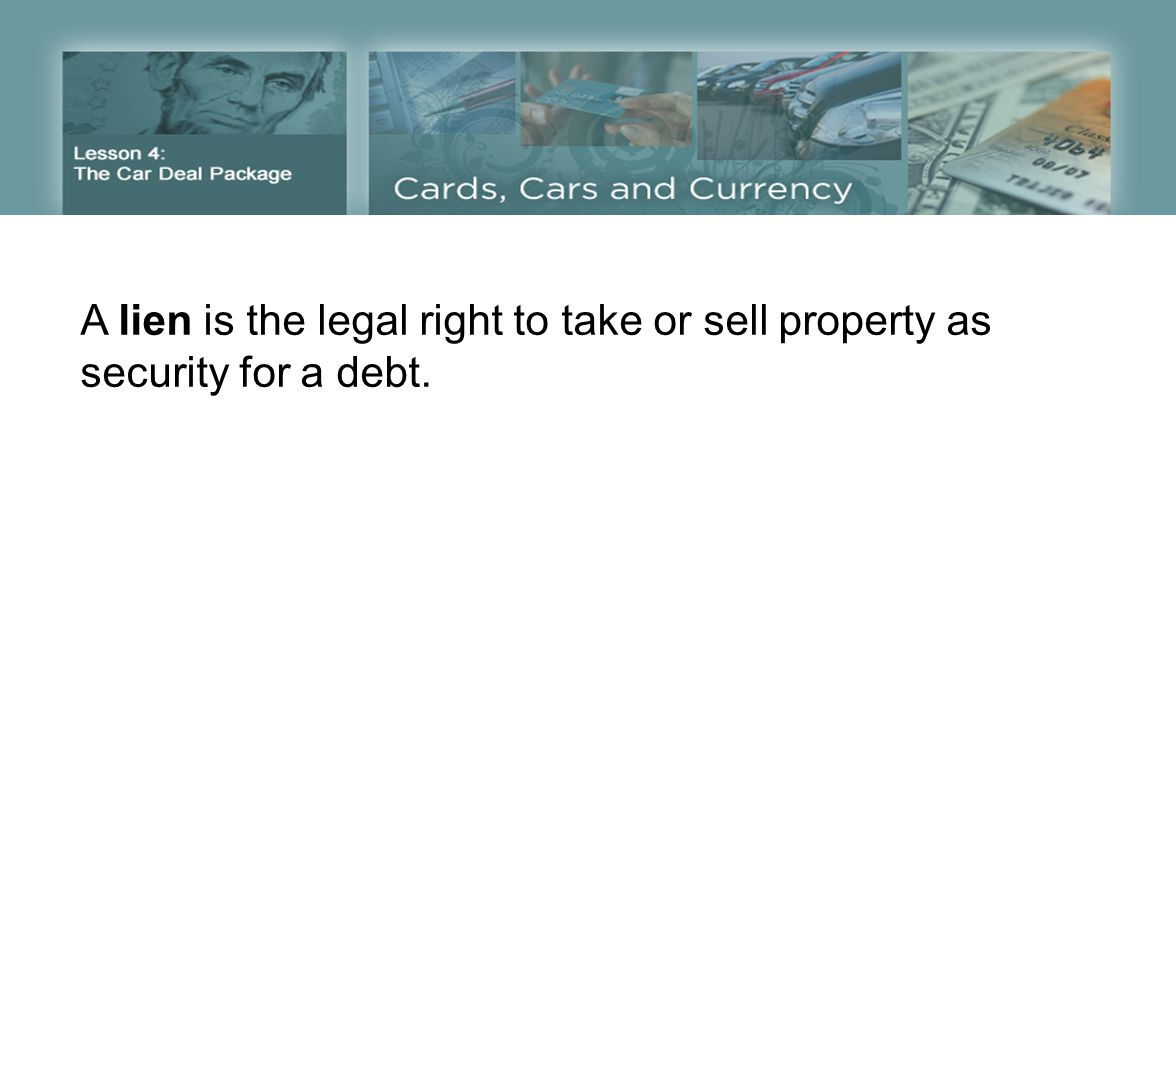 A lien is the legal right to take or sell property as security for a debt.